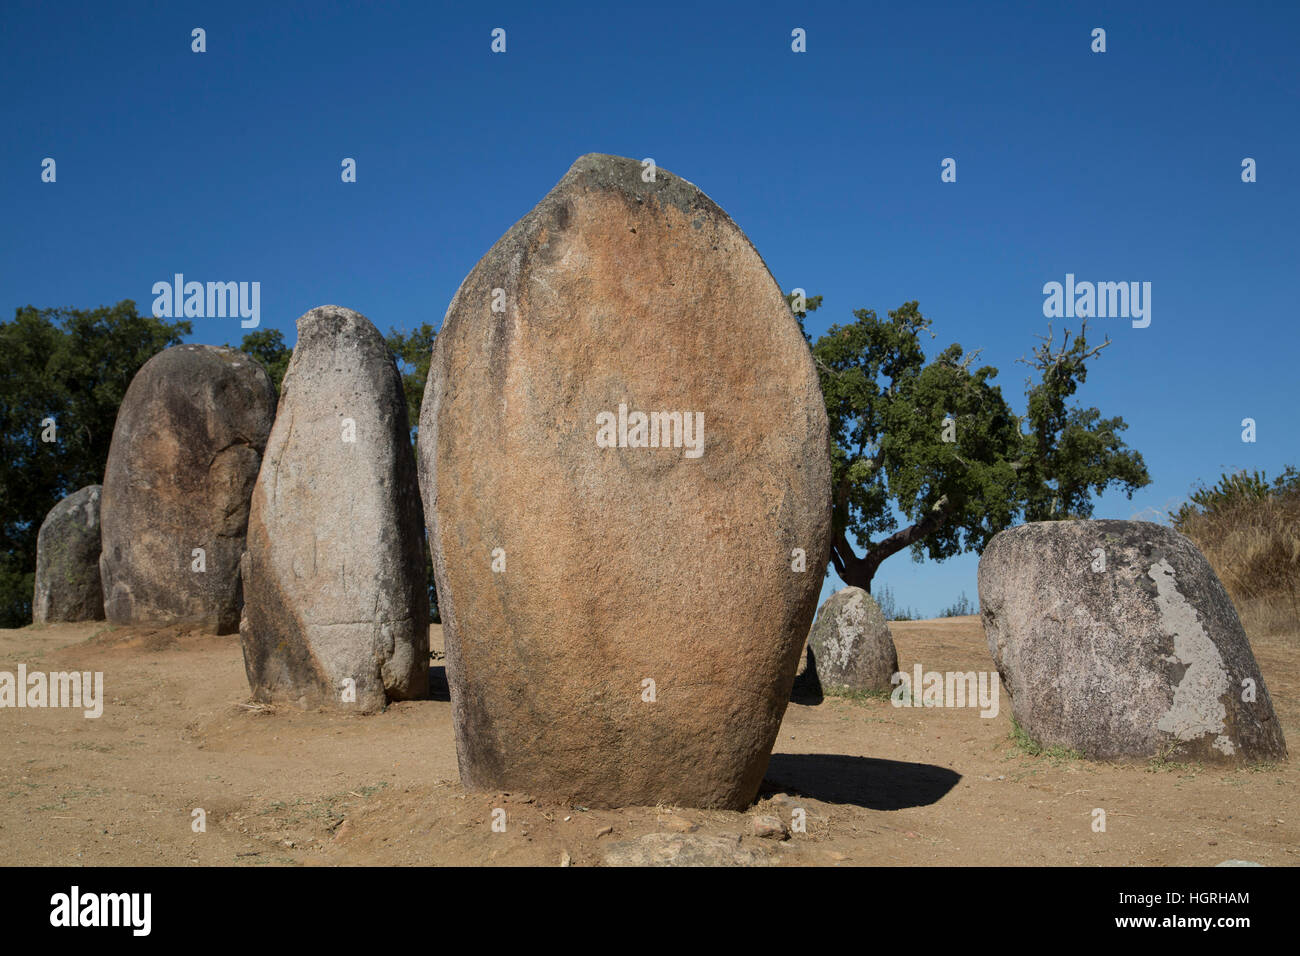 Megalithic Stone-circles, 5000 to 4000 BC, Almendres Cromlech, near Evora, Portugal Stock Photo